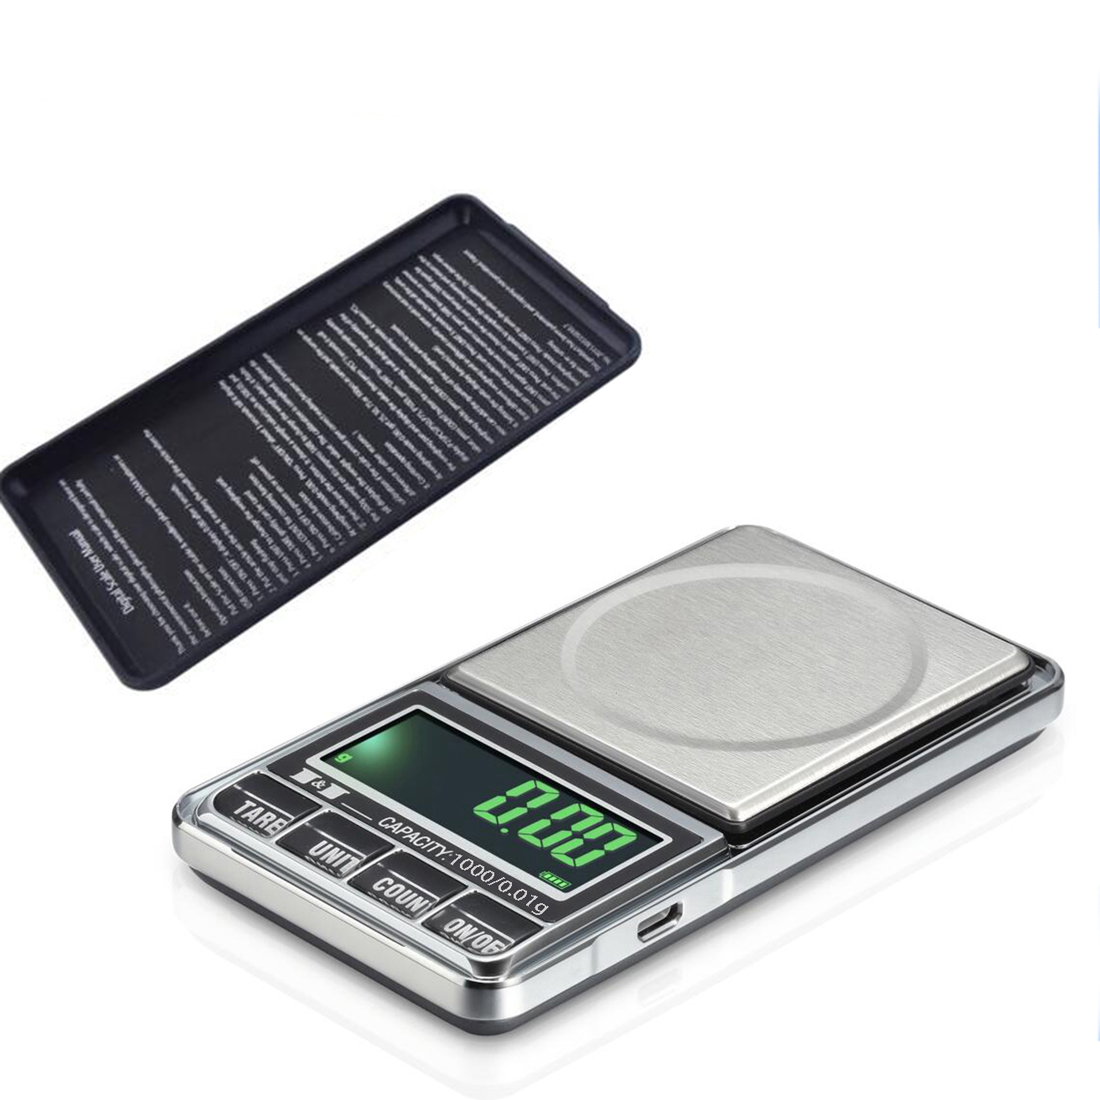 New jewelry scales weigh digital lcd display electronic for Digital jewelry scale target